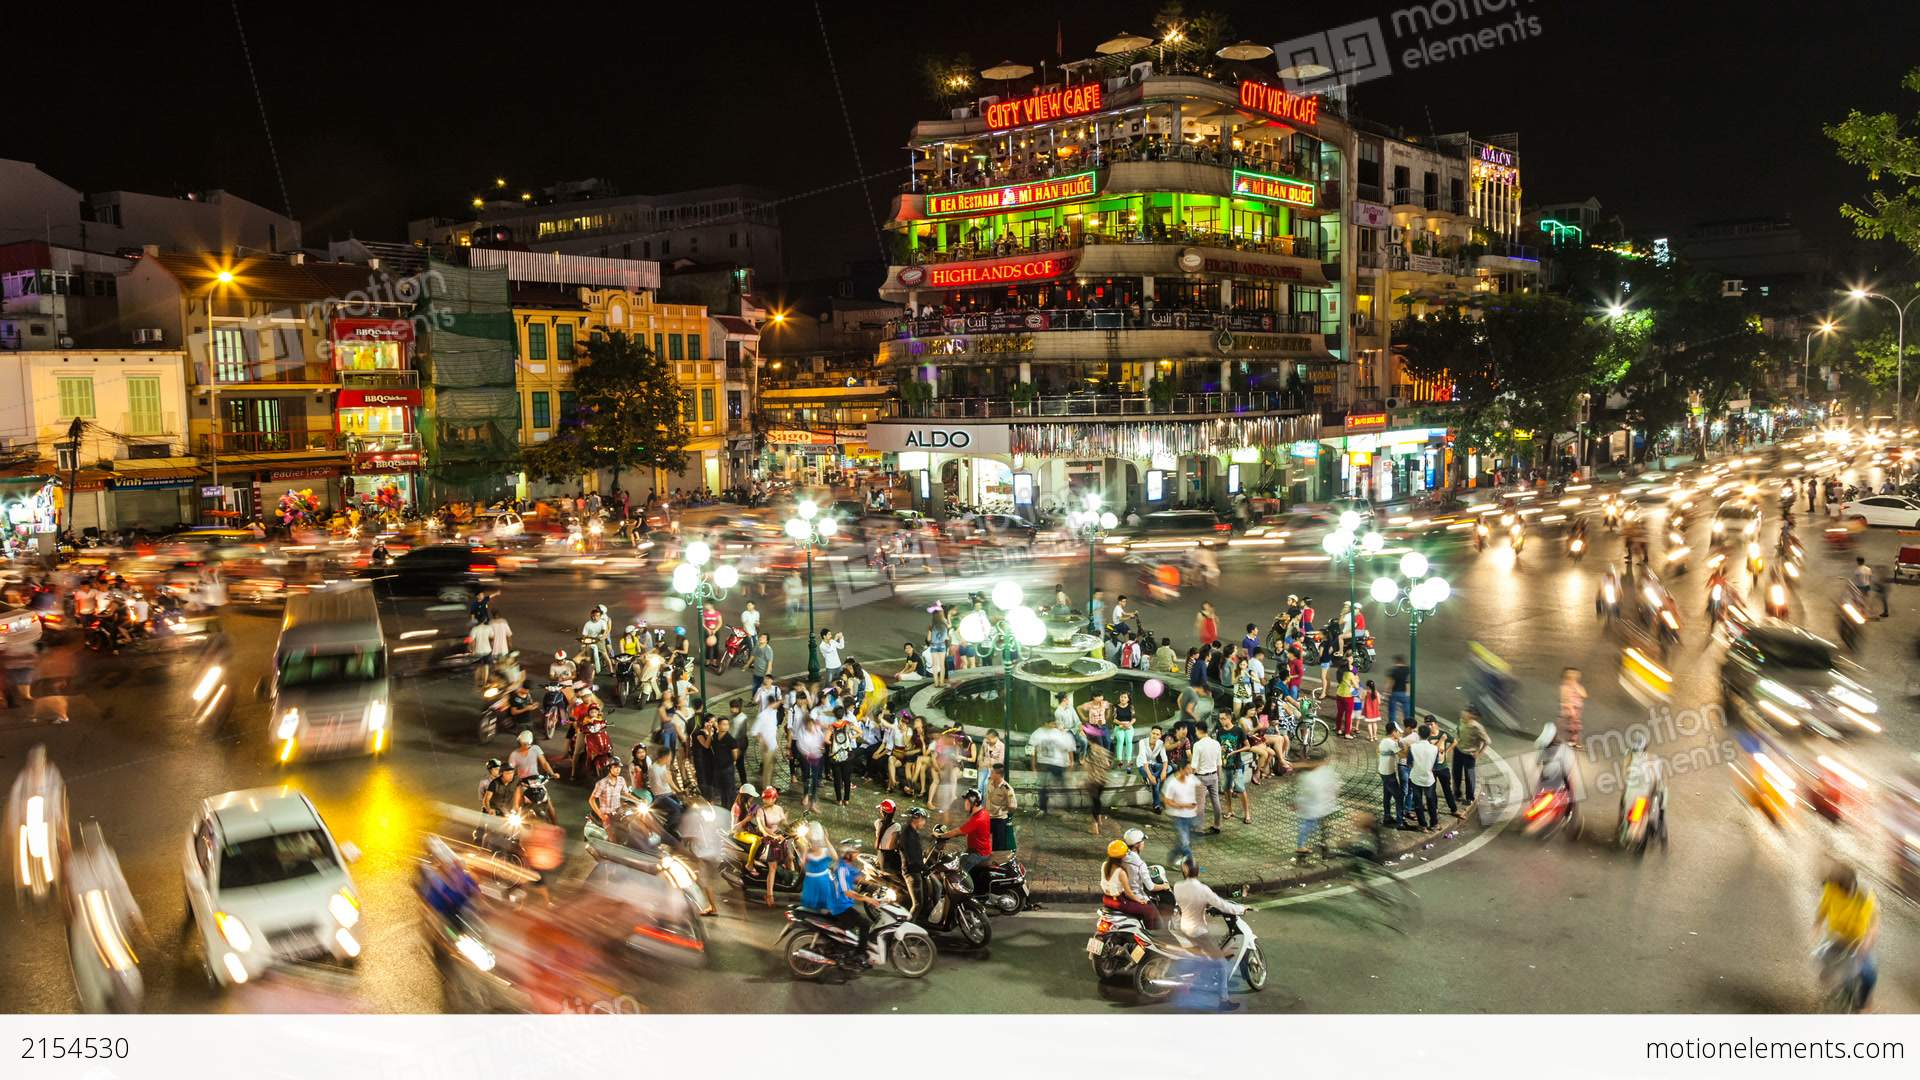 1080 hanoi  vietnam night traffic time lapse stock video footage 2154530 Physical Science Clip Art Earth Science Clip Art